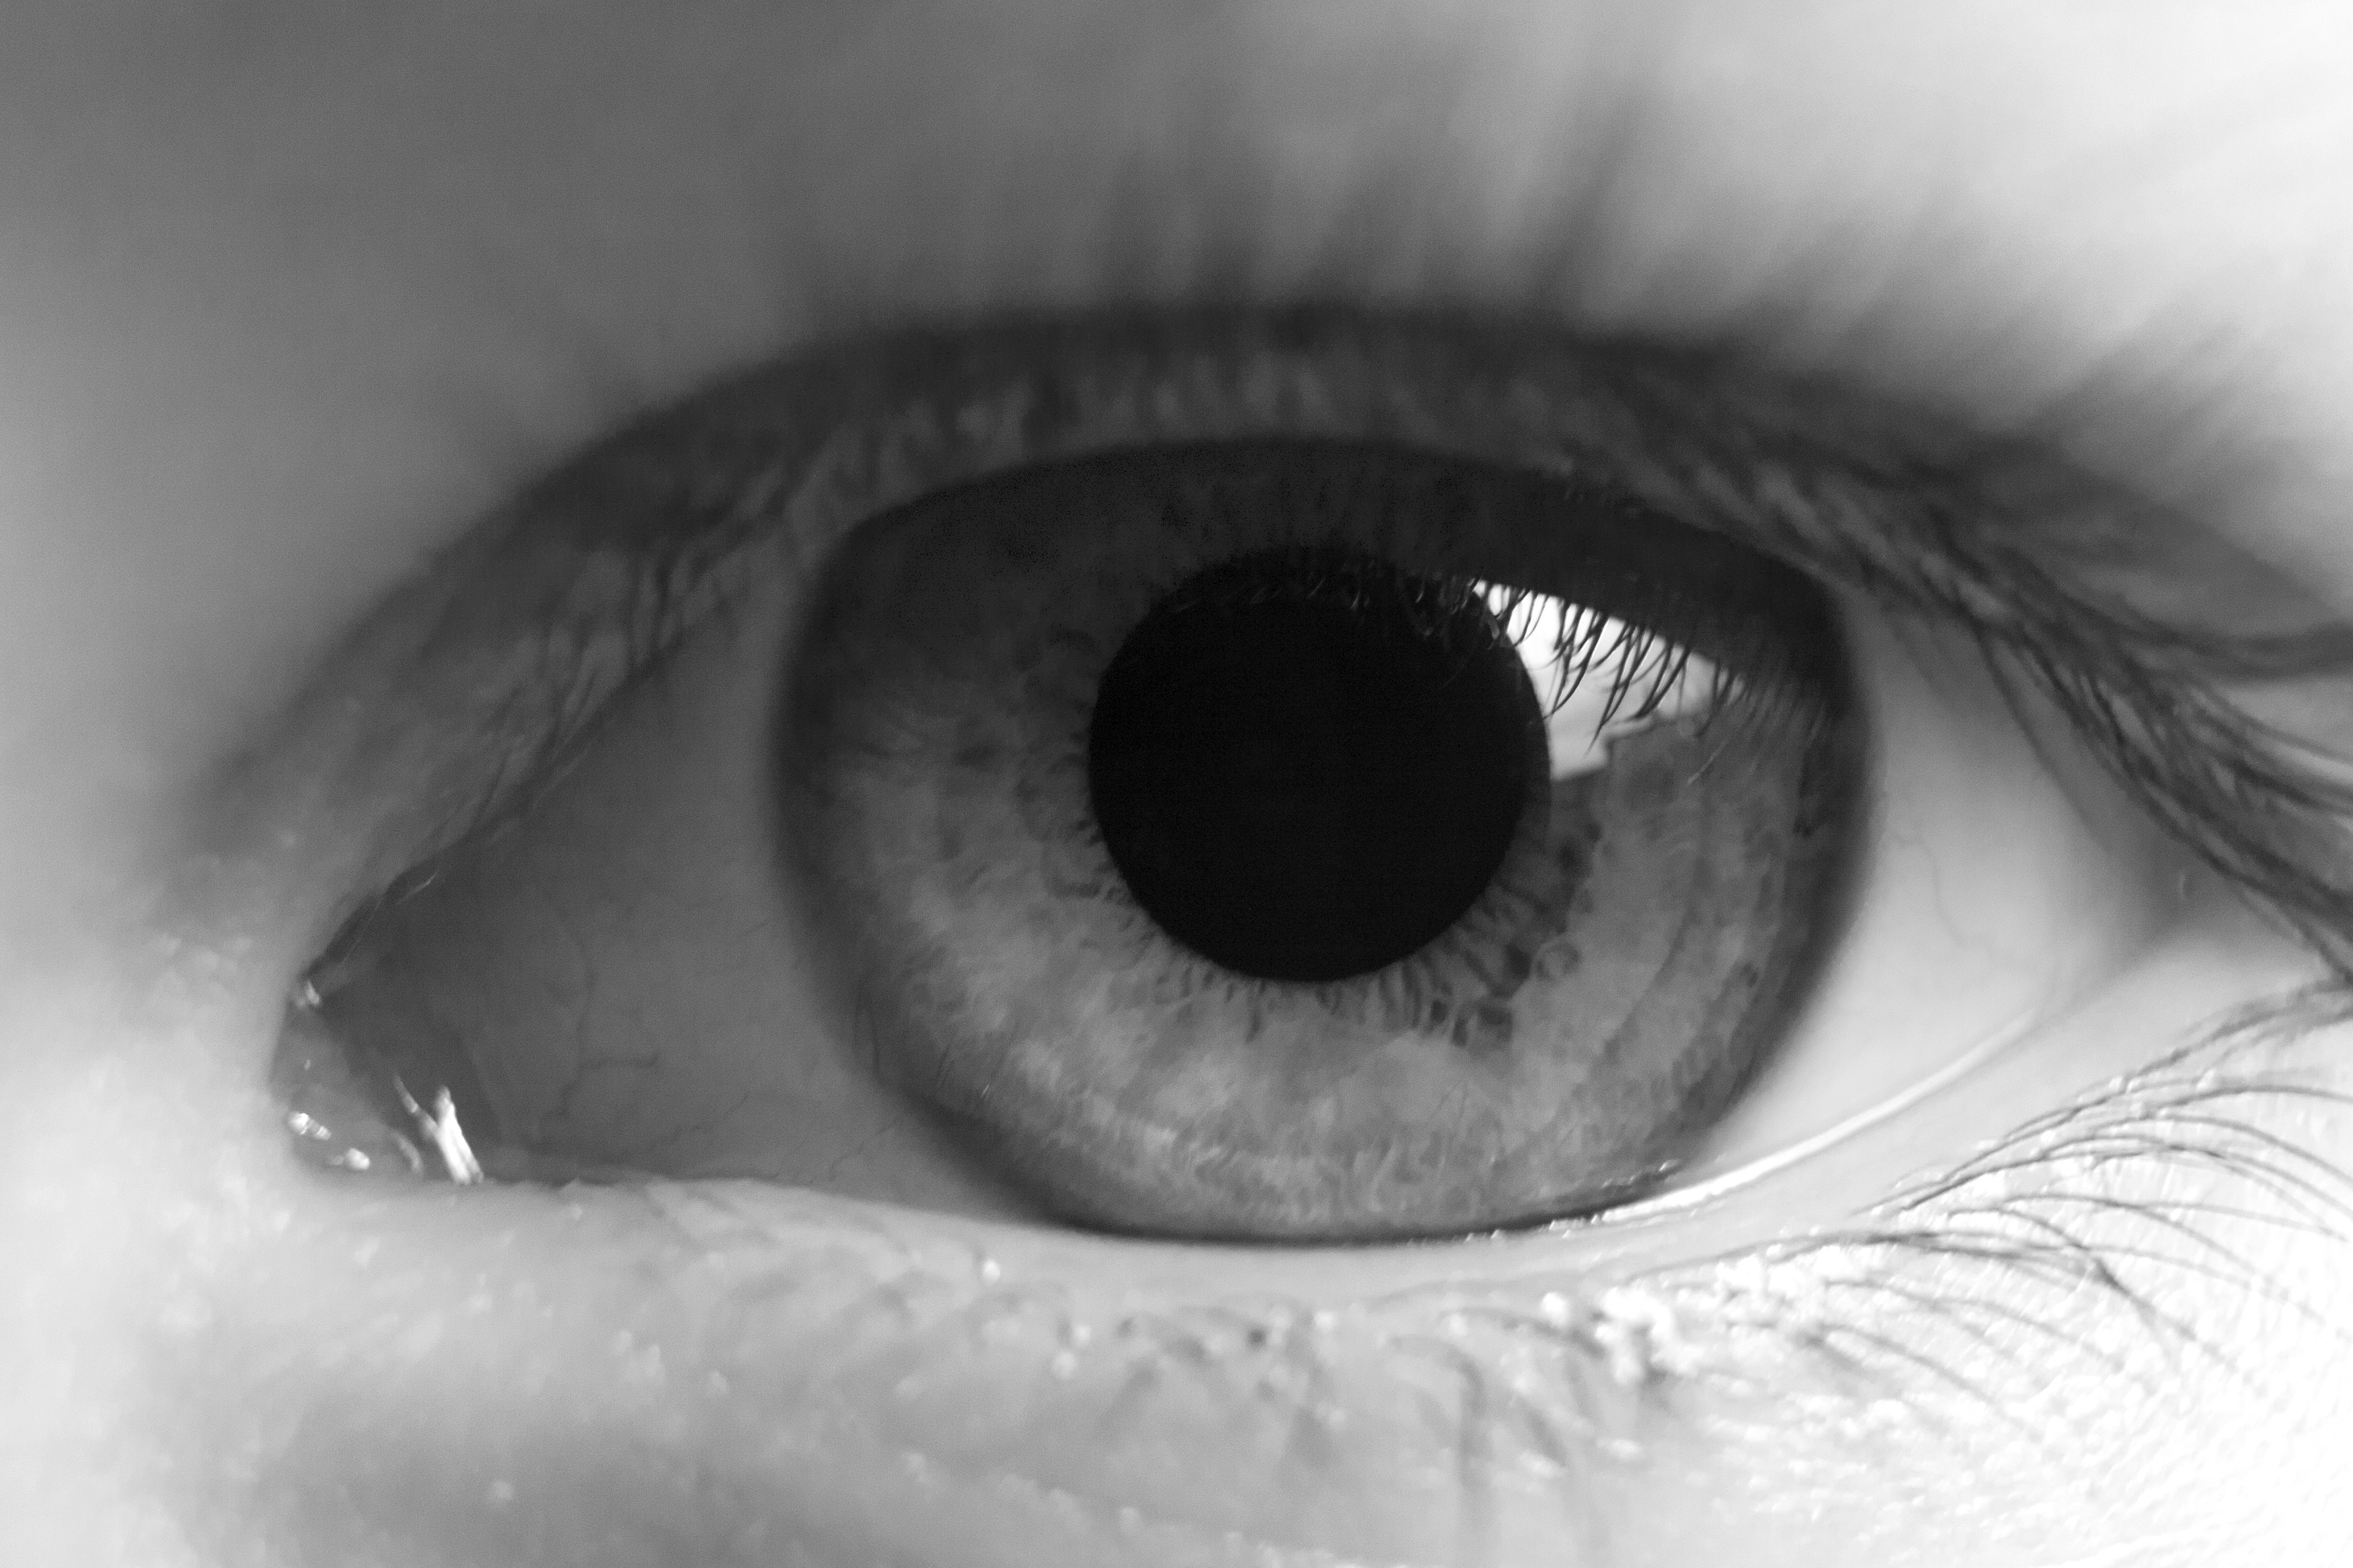 Human eye close up in black and white extended pupil